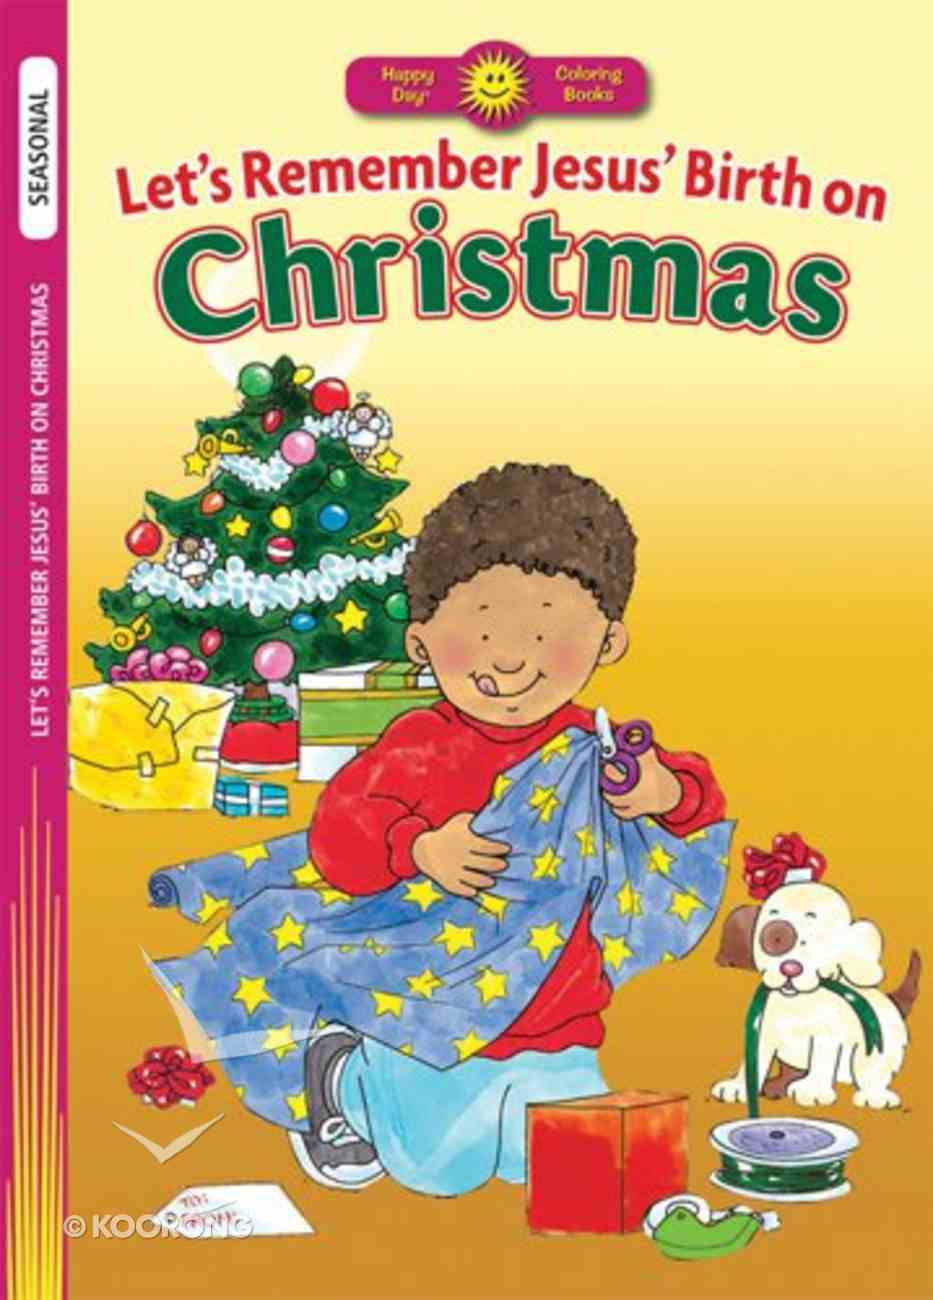 Let's Remember Jesus' Birth on Christmas (Happy Day Colouring & Activity Series) Paperback